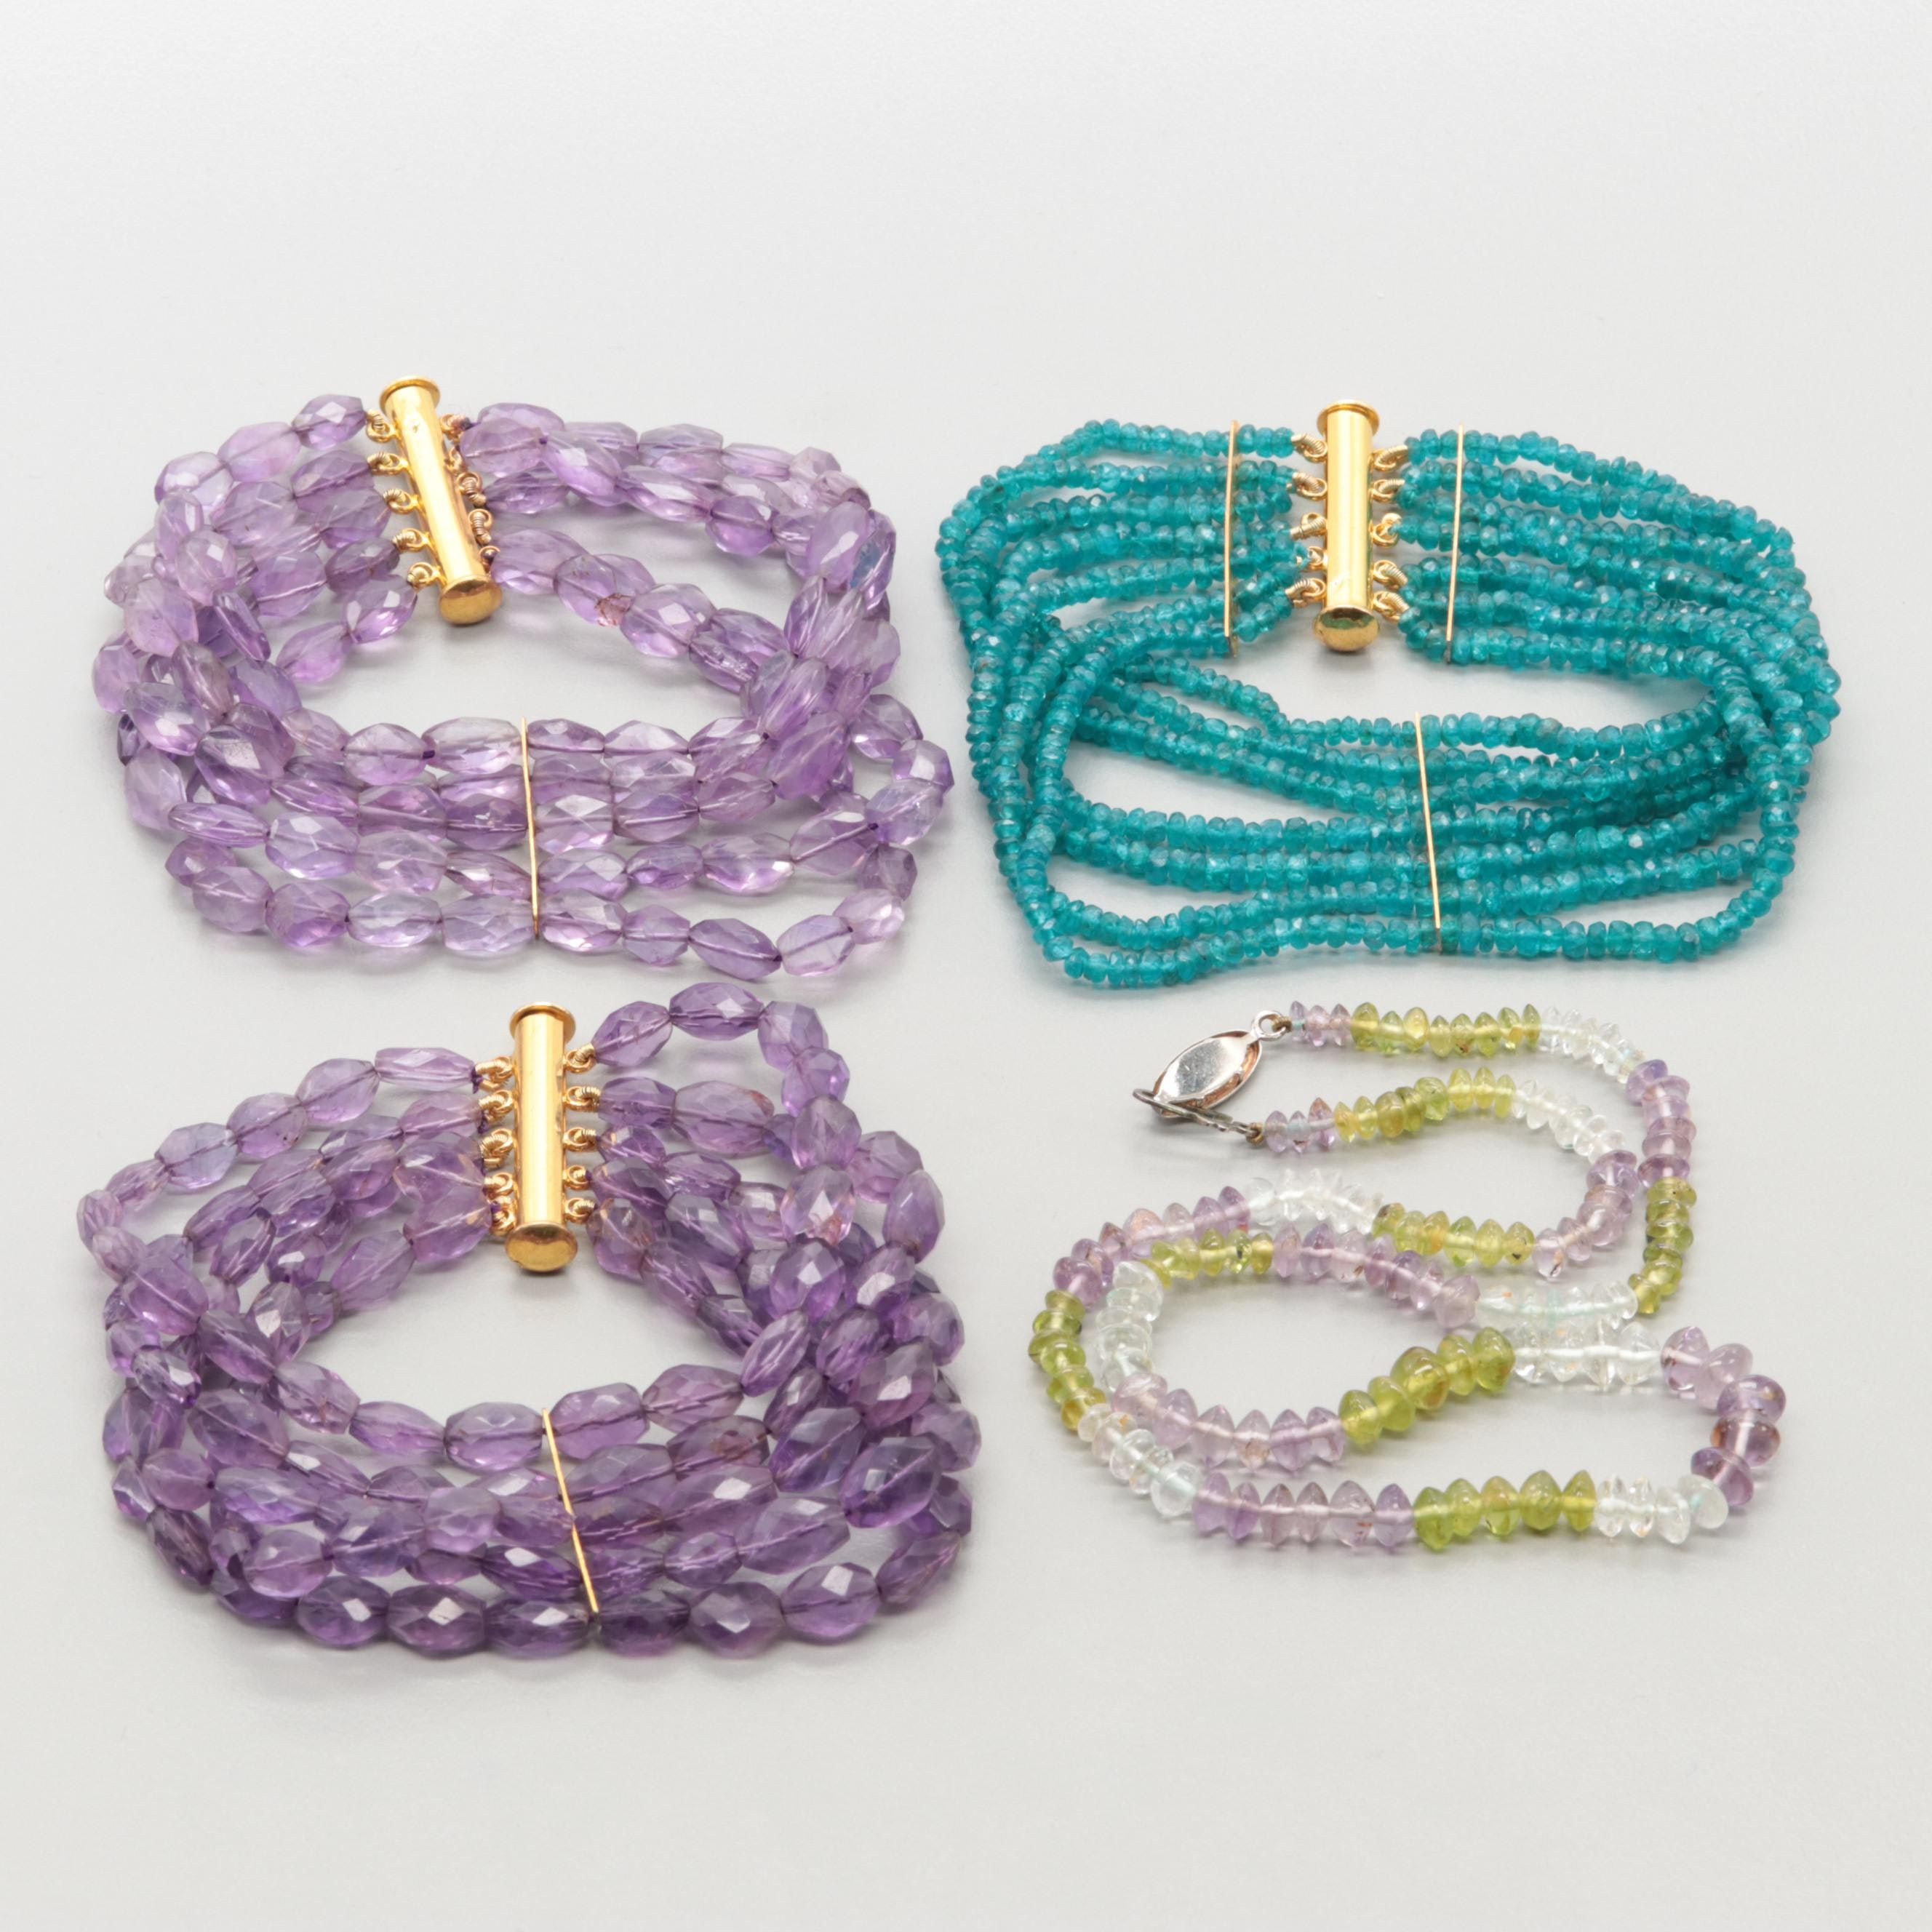 Gold Tone Beaded Necklace and Bracelets with Amethyst and Peridot